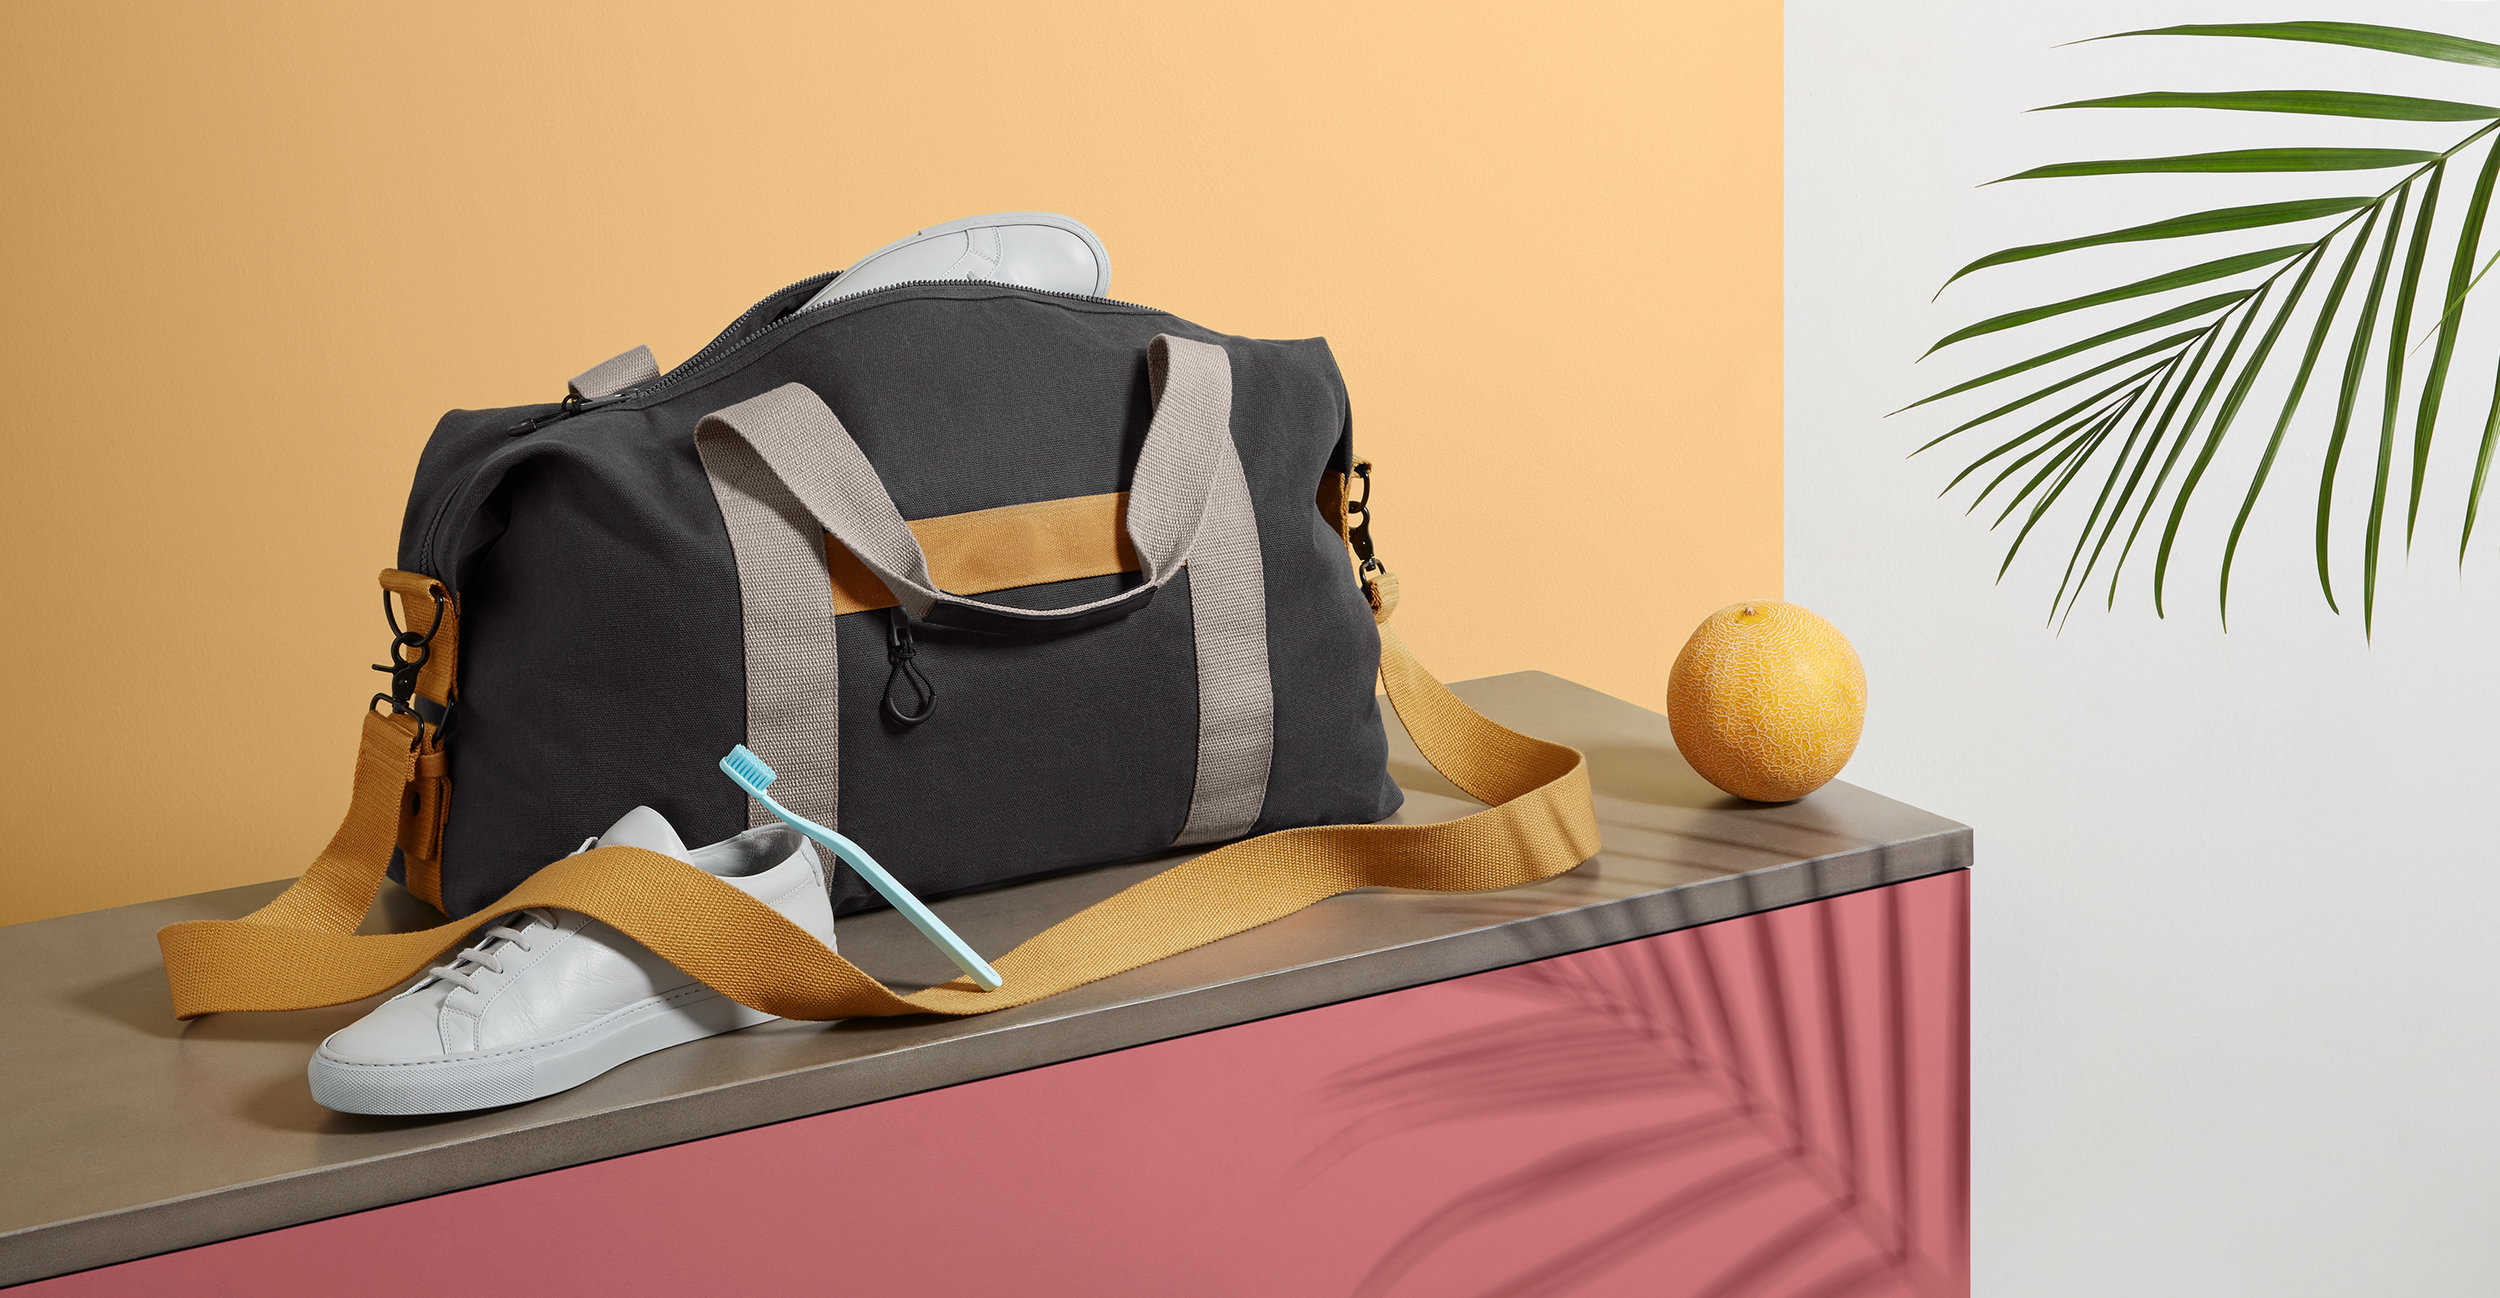 I art directed the photography for Made.com's first range of backpacks and weekenders, this includes a selection of the still life and model images.